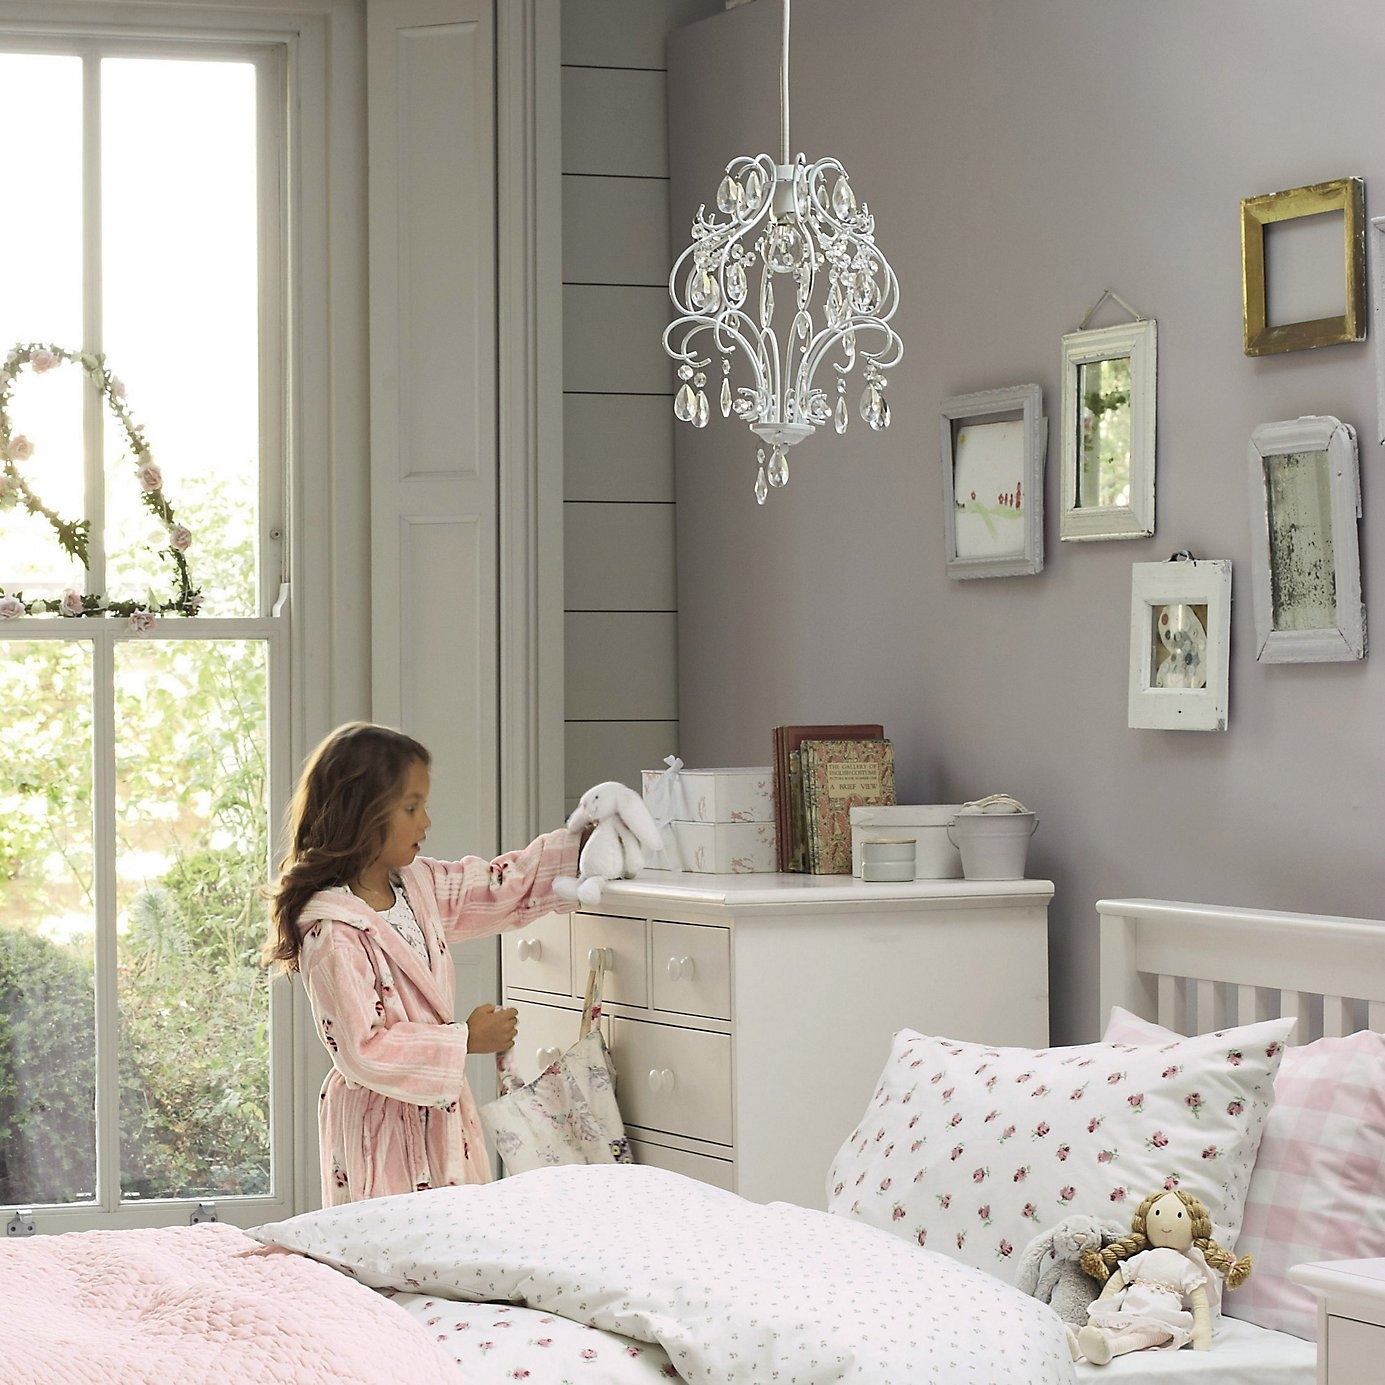 Outstanding Childrens Bedroom Chandeliers And Purchasing Proper Within Kids Bedroom Chandeliers (Image 21 of 25)